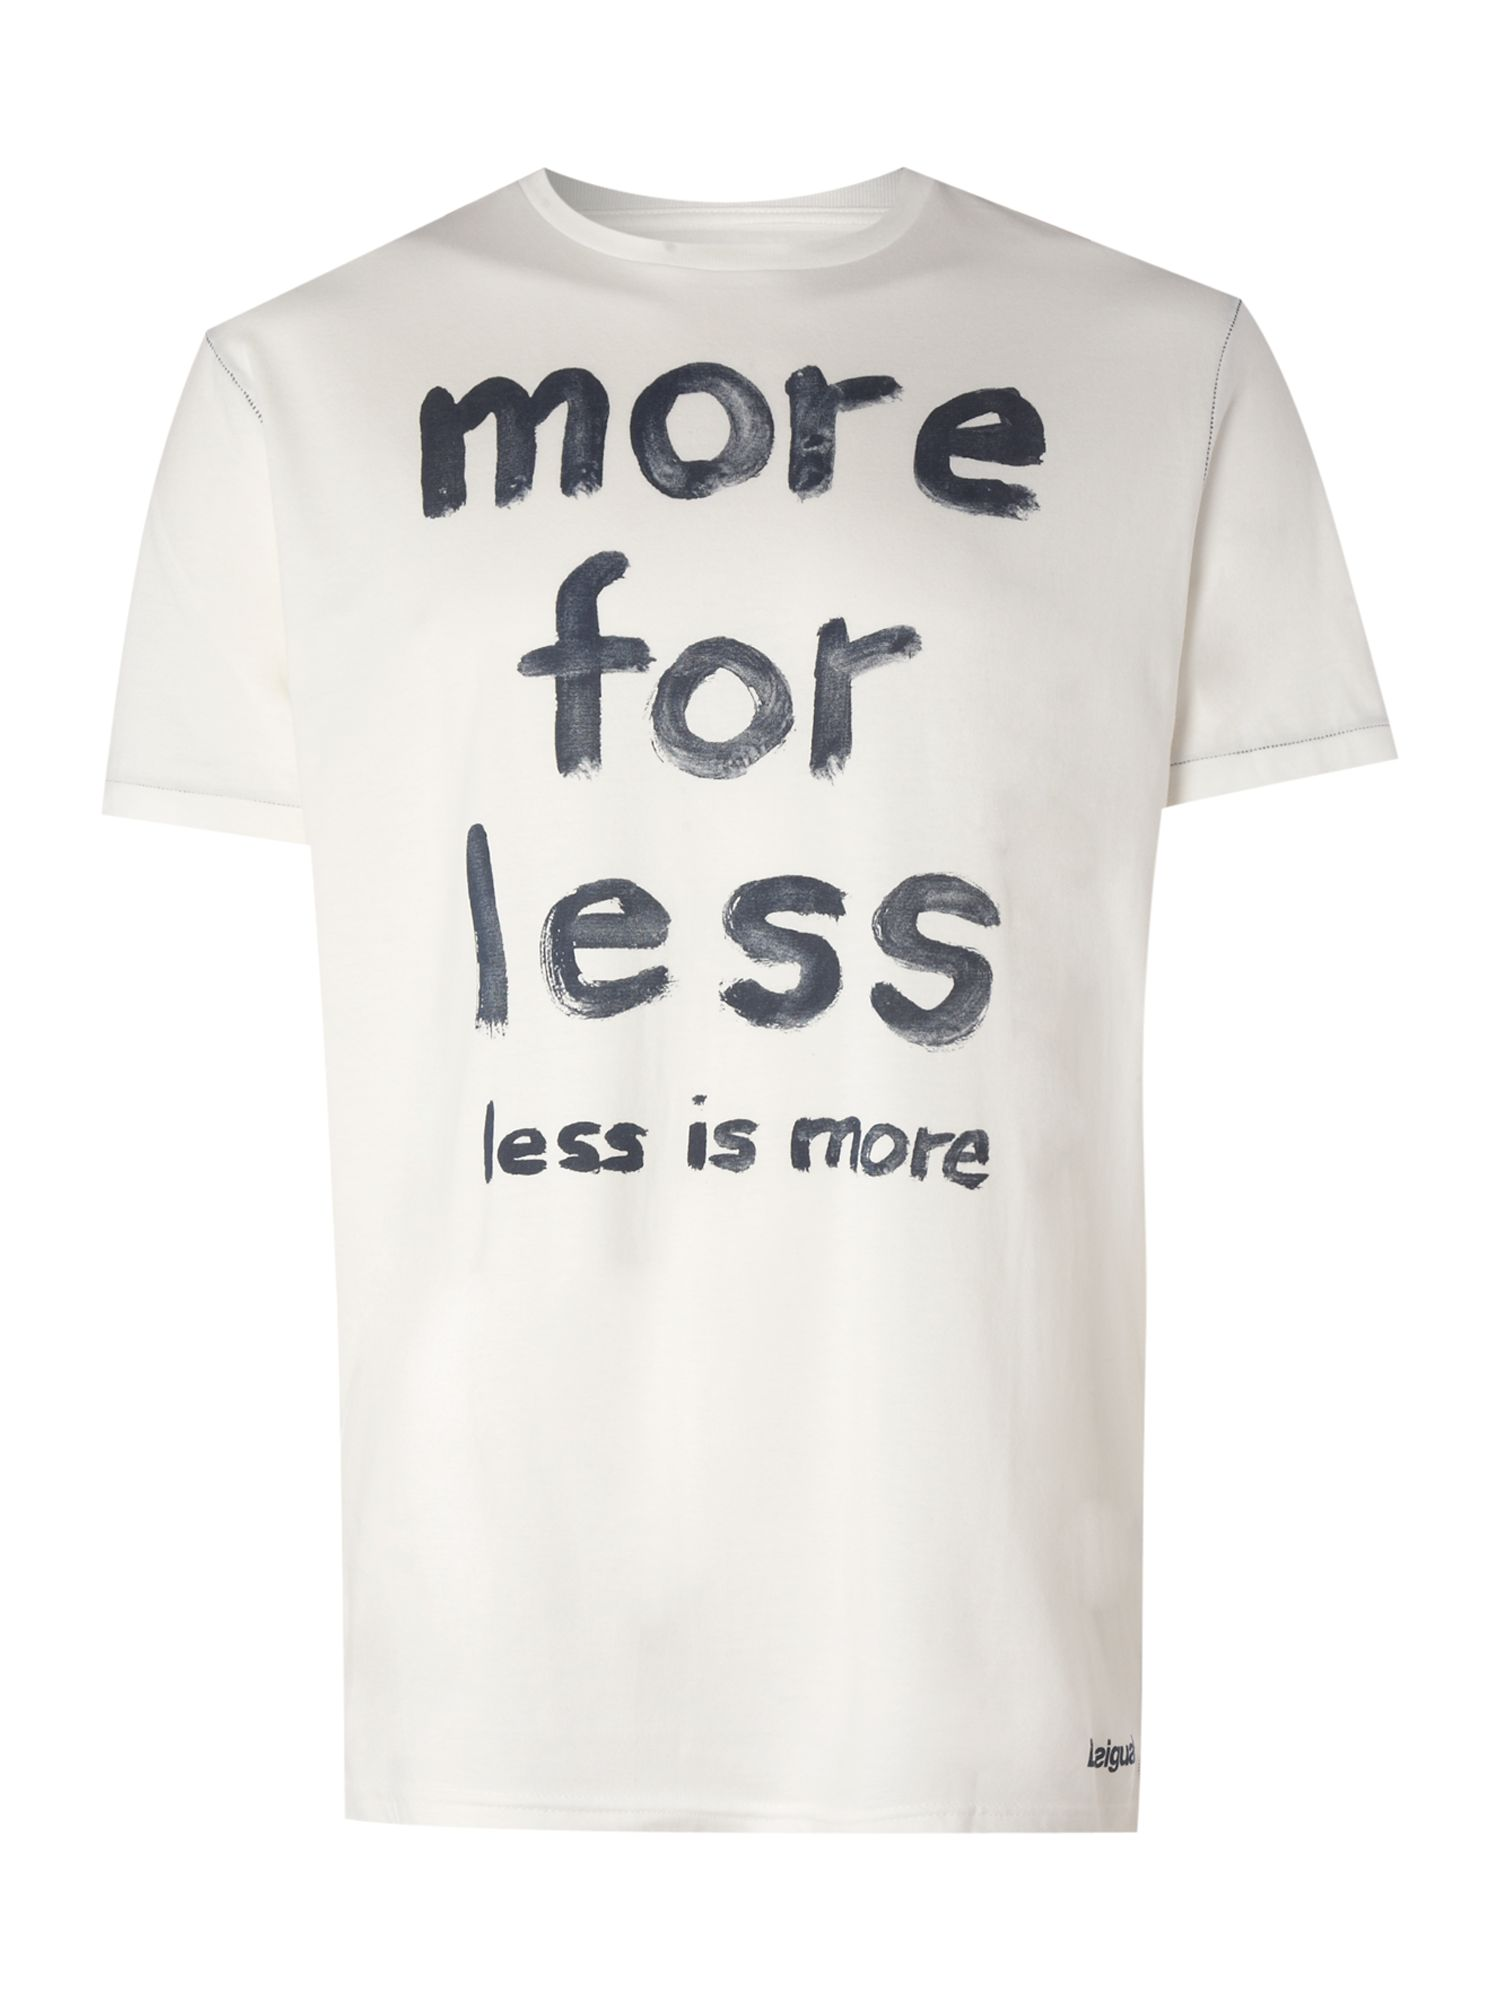 Desigual More for less T-shirt - Off White L,L,L,XL,XL,XL product image